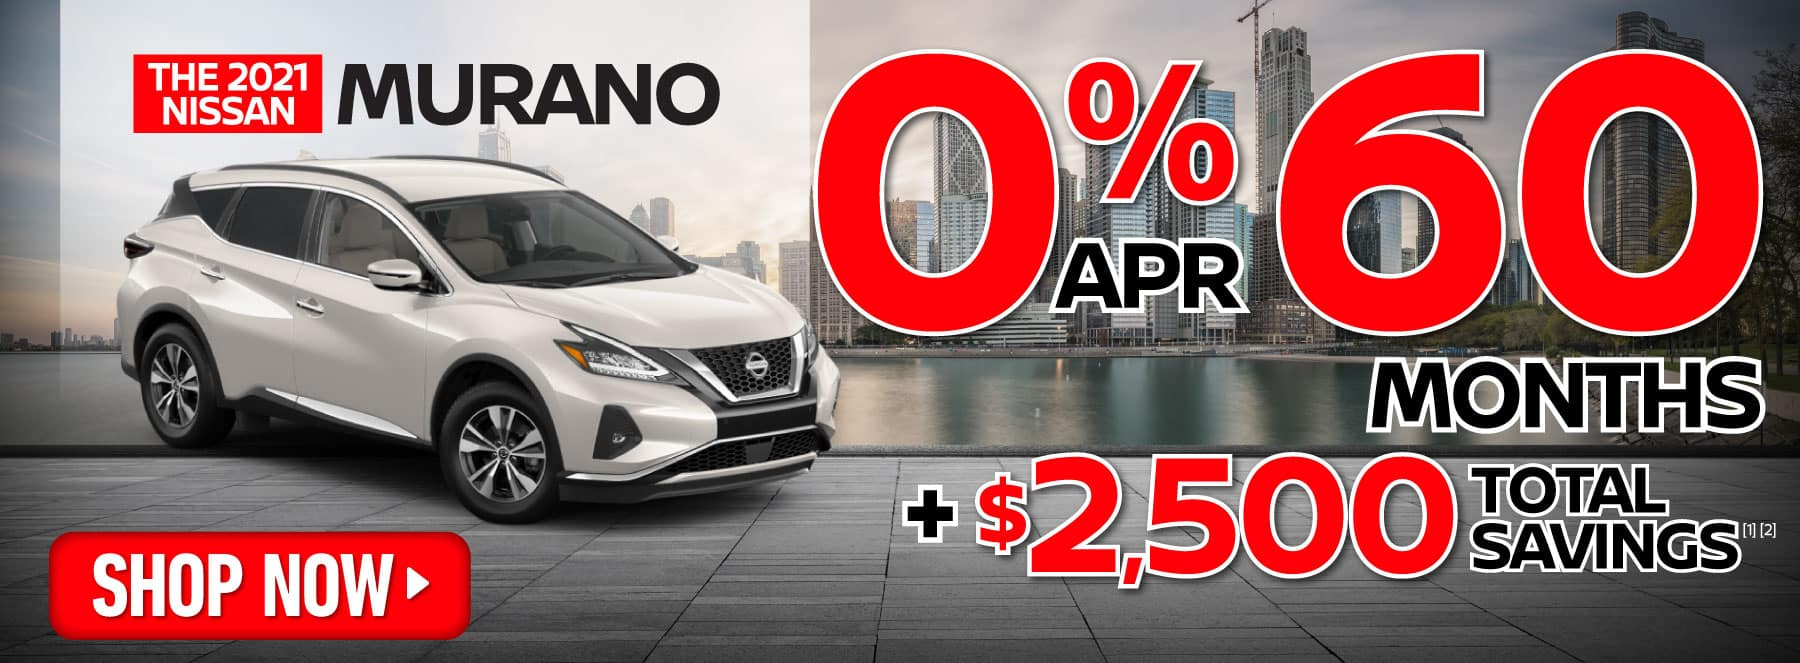 2021 Murano 0% apr for 60 months | Shop Now